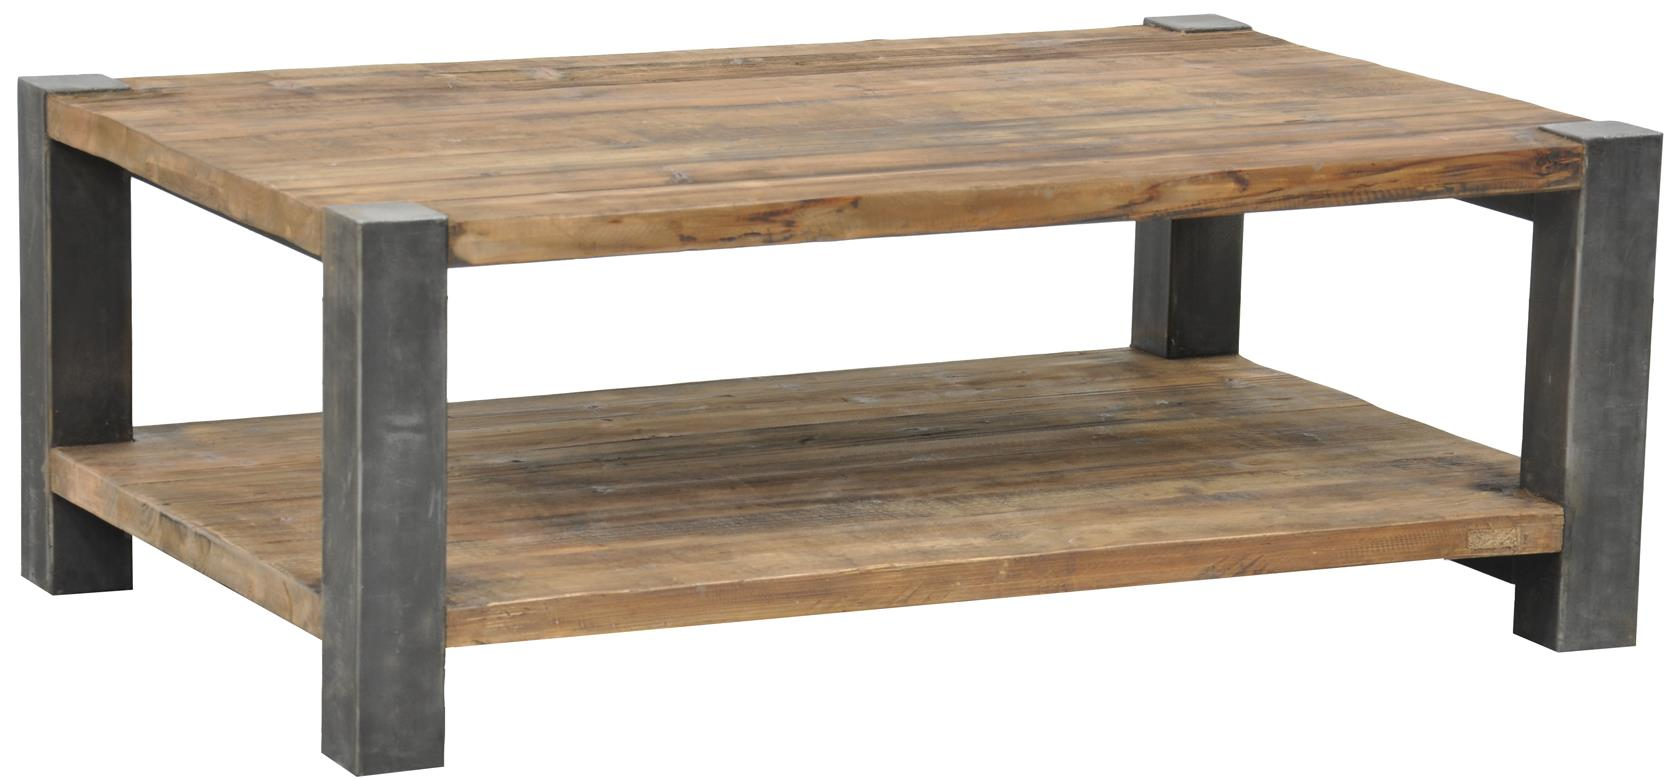 Classic home jaden reclaimed coffee table with iron base for Classic home furniture jacksonville fl